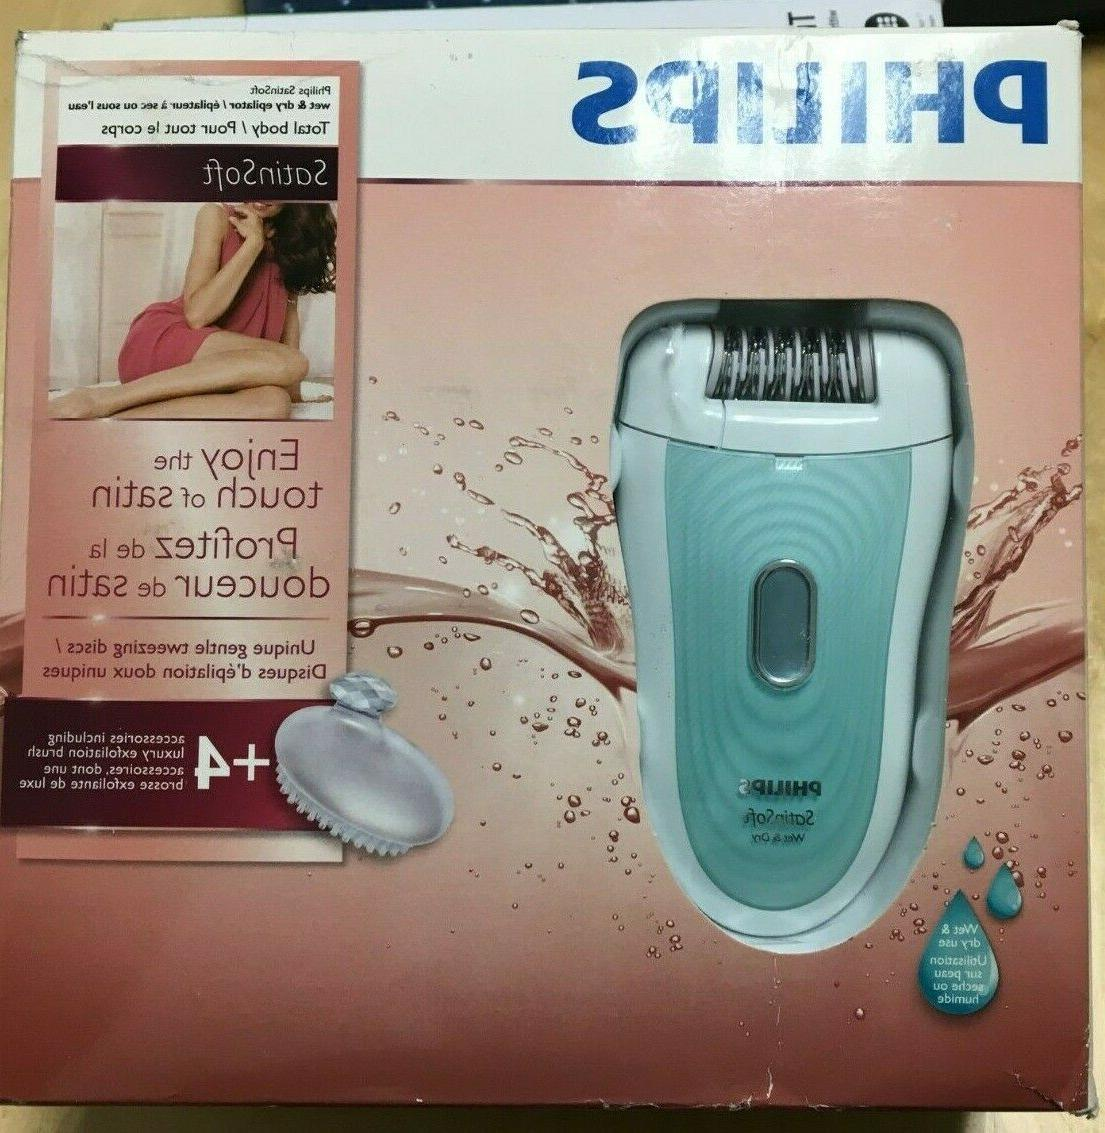 satin soft wet dry cordless epilator hp6521